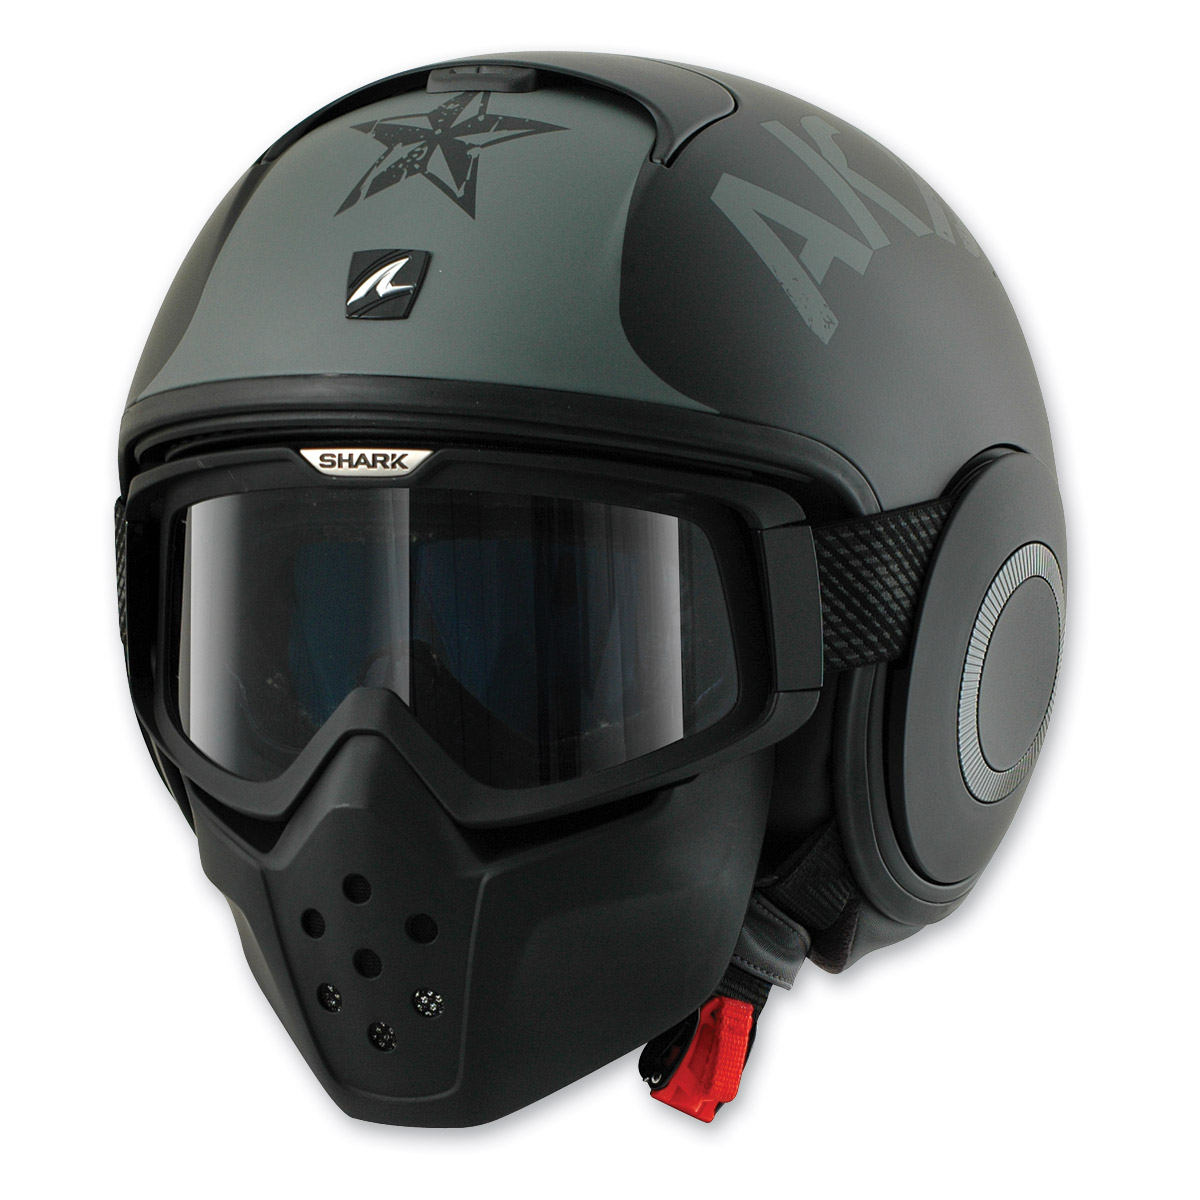 Shark RAW Soyouz Matte Black/Gray Helmet